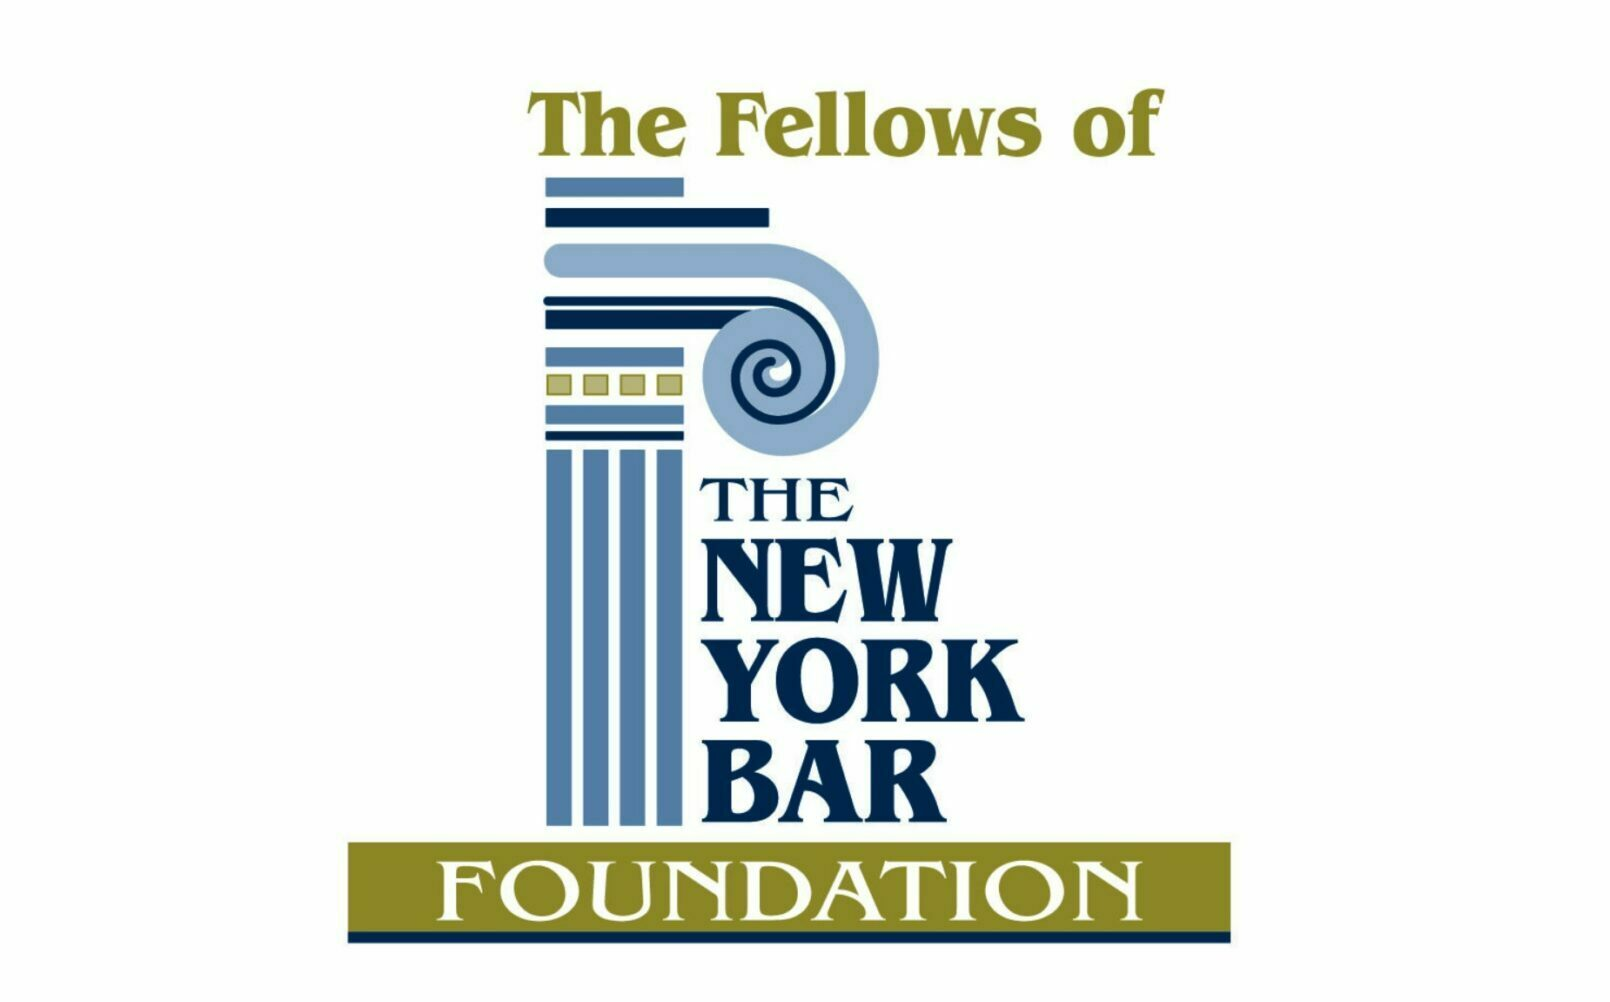 The fellows of the new york bar foundation